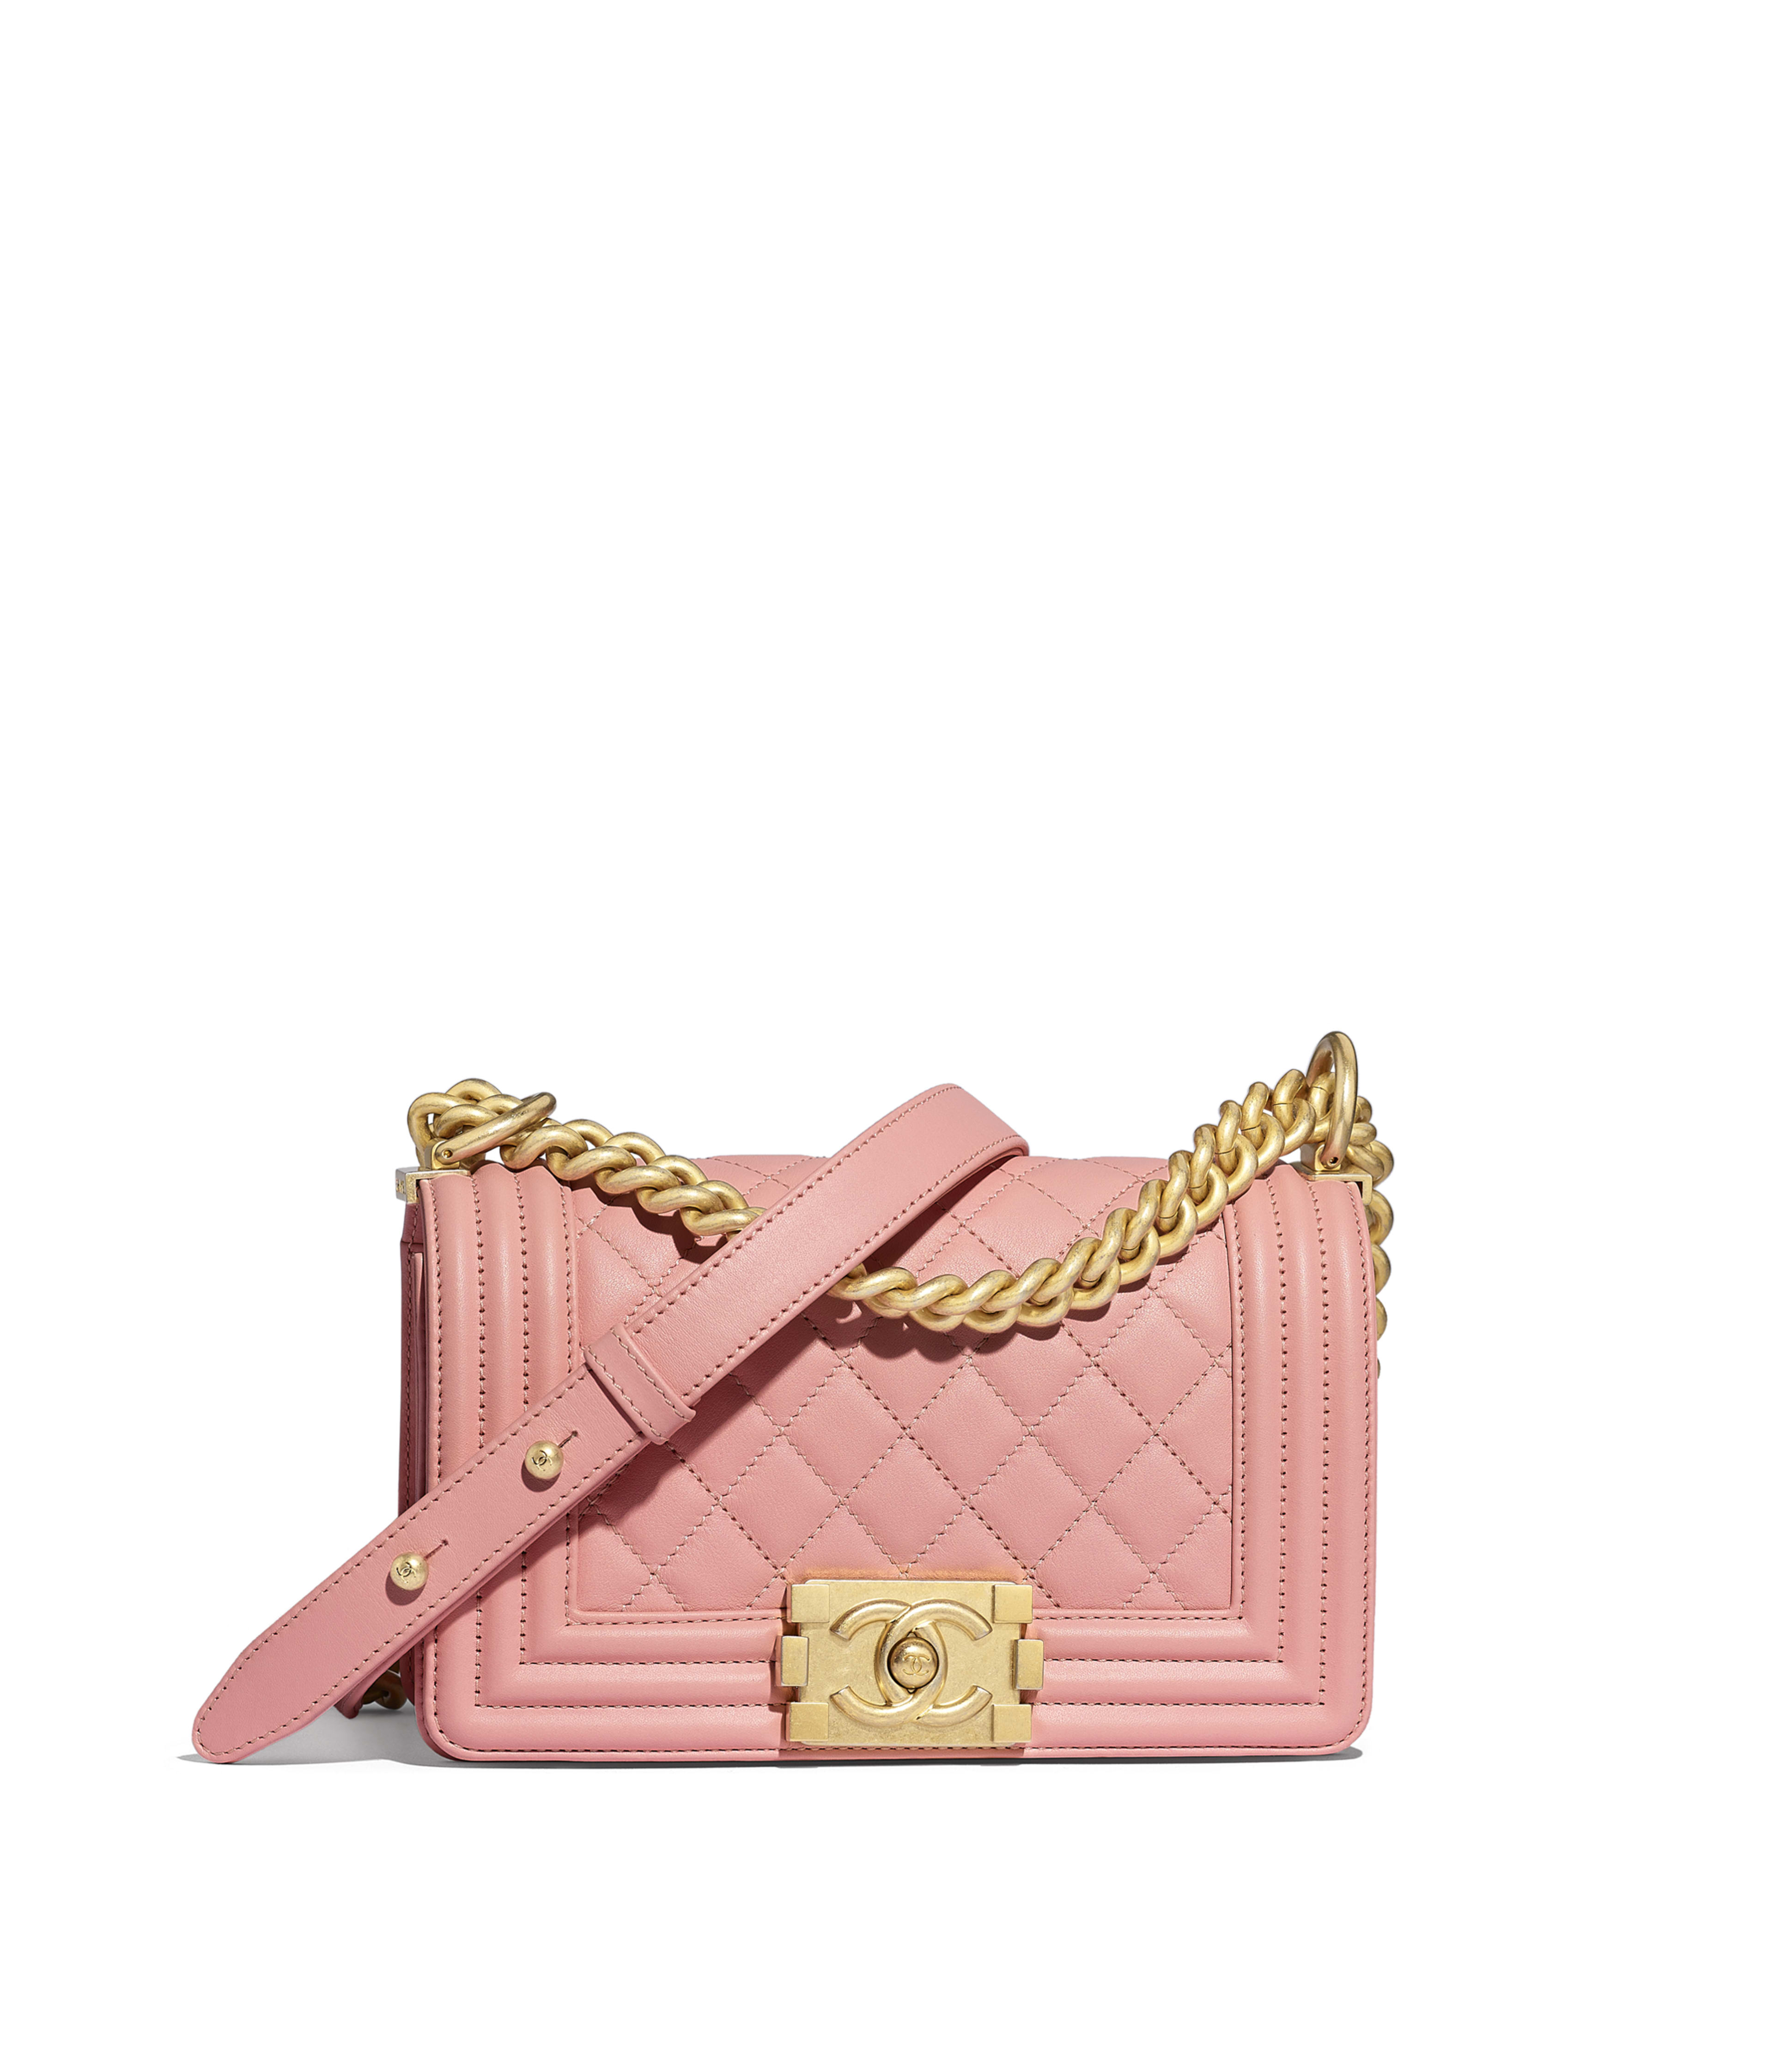 970e81736648 Small BOY CHANEL Handbag Calfskin & Gold-Tone Metal, Pink Ref.  A67085Y09939N0897